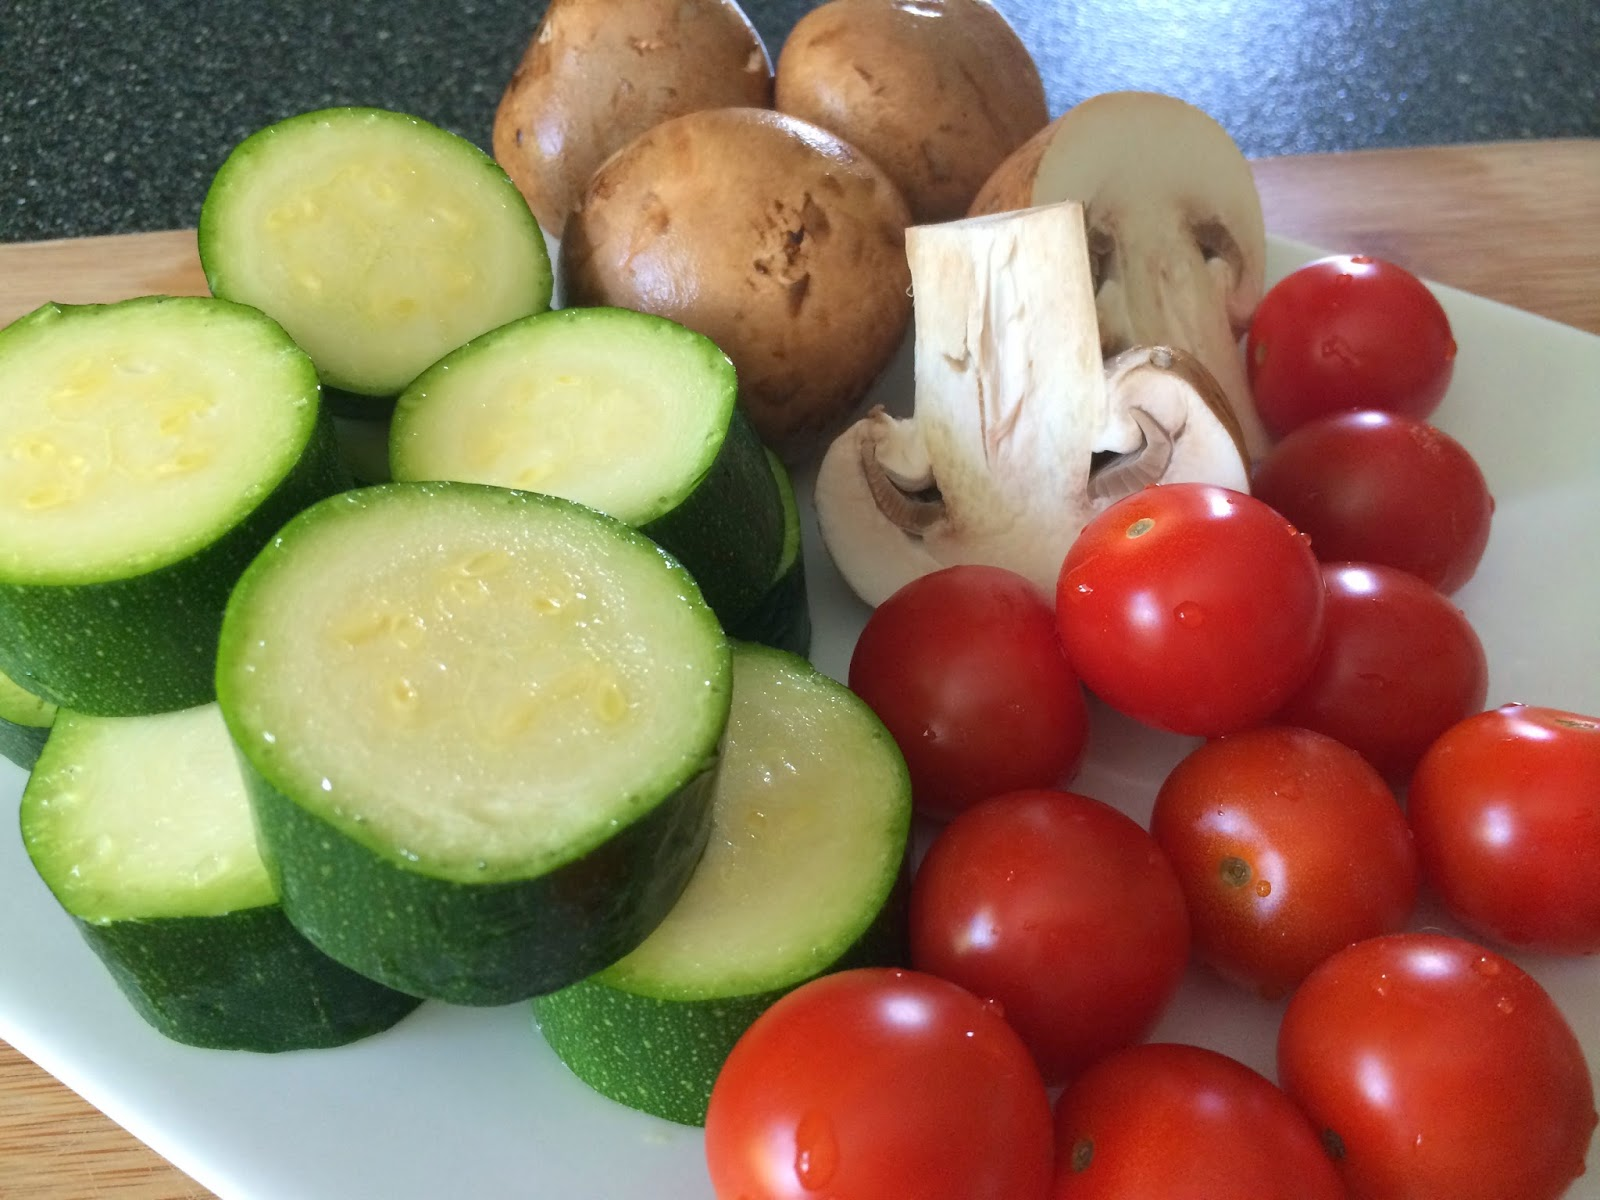 tomatoes, crimini mushrooms, zucchini, fresh veggies